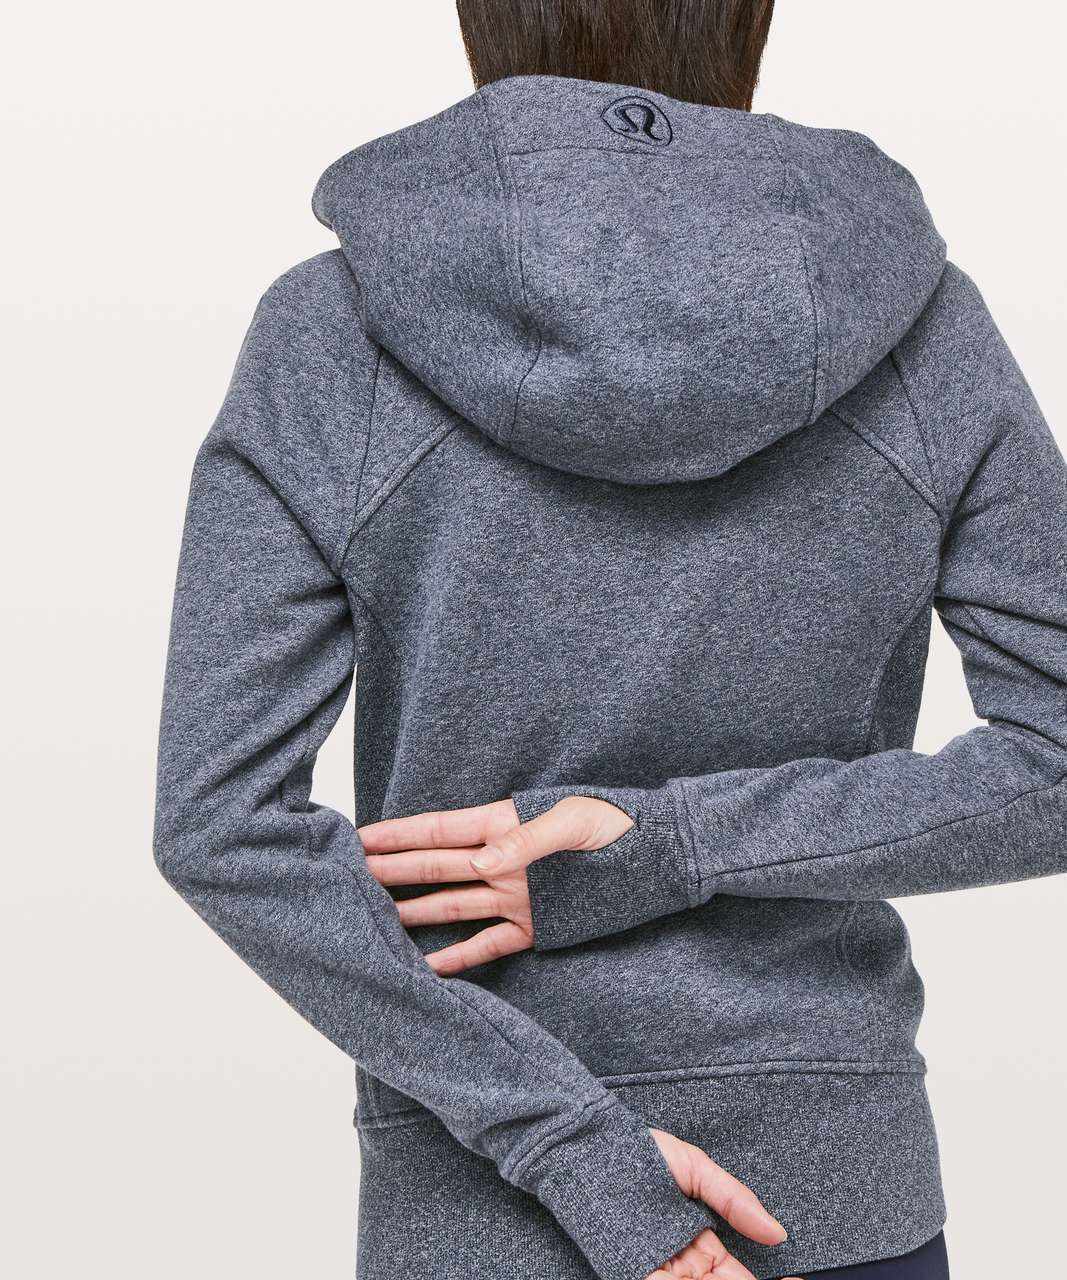 Lululemon Scuba Hoodie *Light Cotton Fleece - Heathered Speckled True Navy